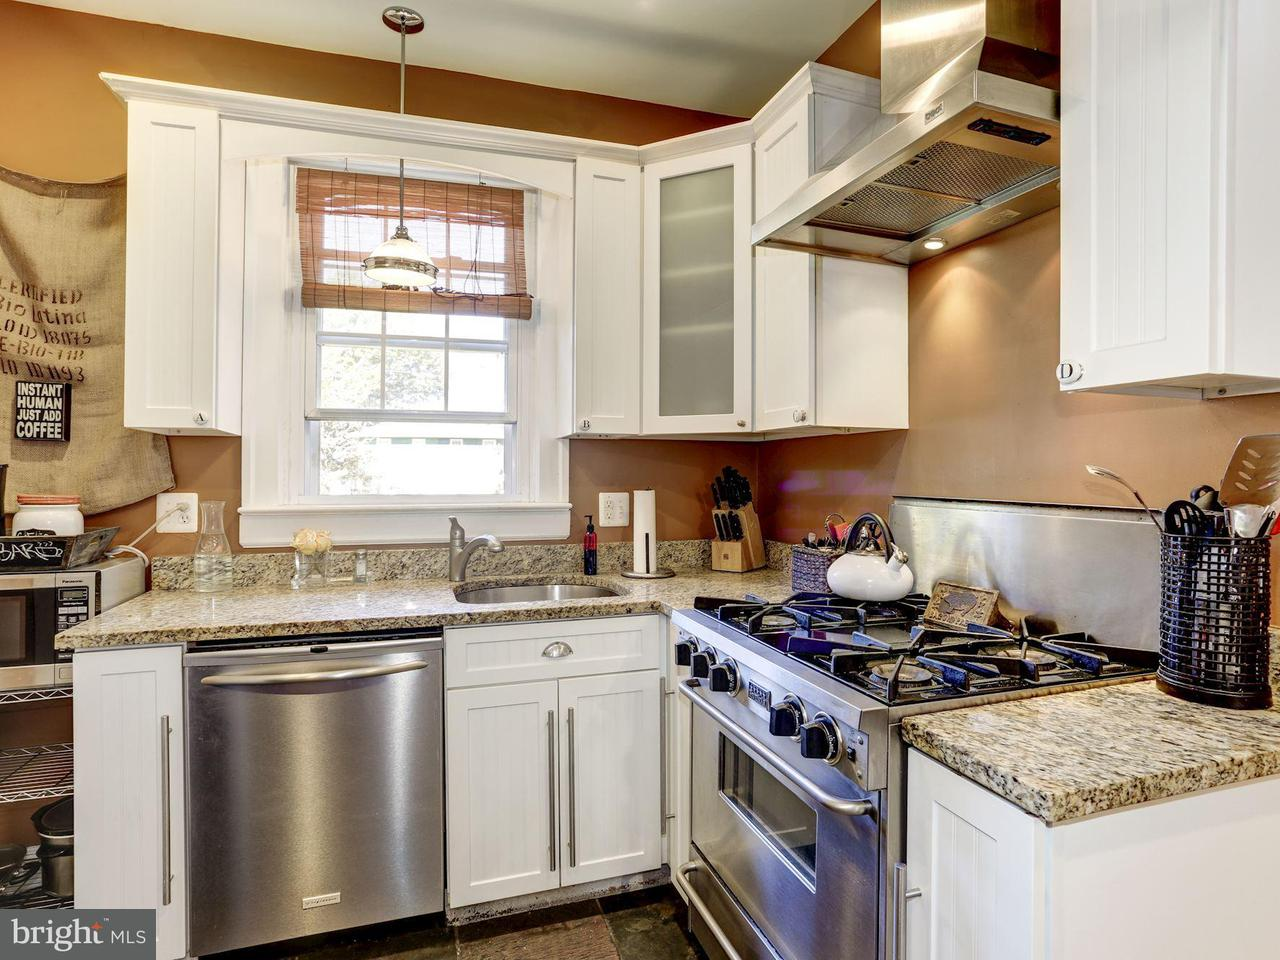 Additional photo for property listing at 1916 Lawrence St Ne 1916 Lawrence St Ne Washington, District Of Columbia 20018 Verenigde Staten